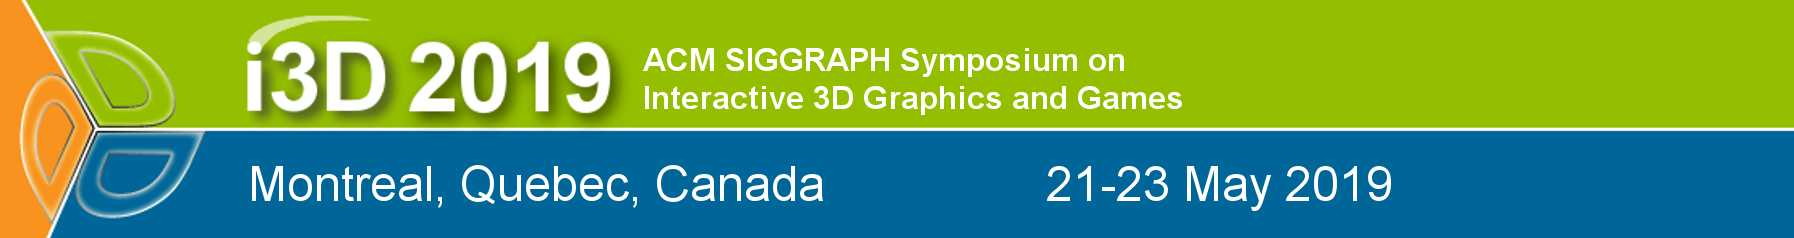 Symposium on Interactive 3D Graphics and Games (I3D '19)